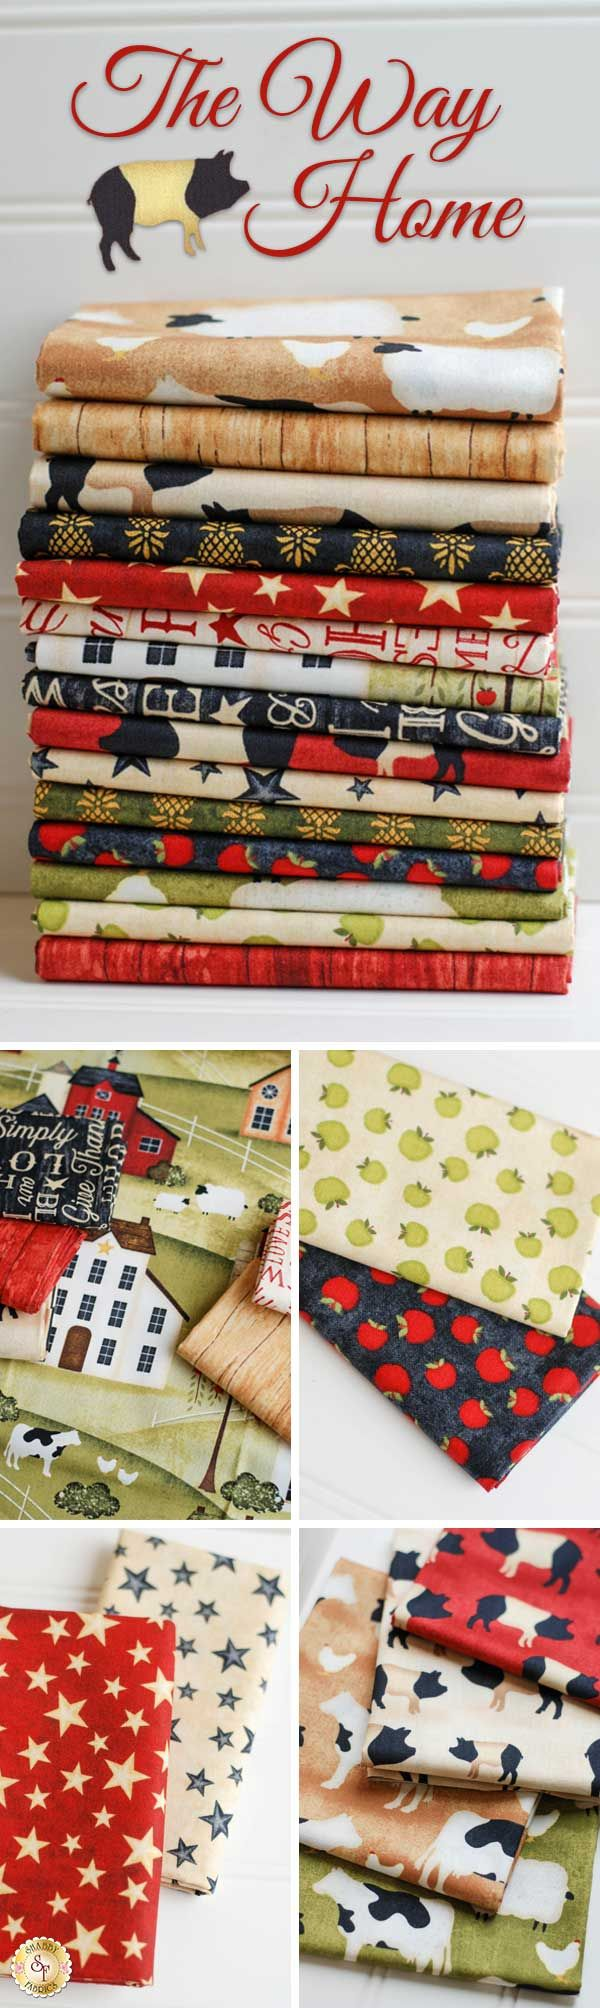 The Way Home by Jennifer Pugh for Wilmington Prints is a traditional farm fabric collection available at Shabby Fabrics!